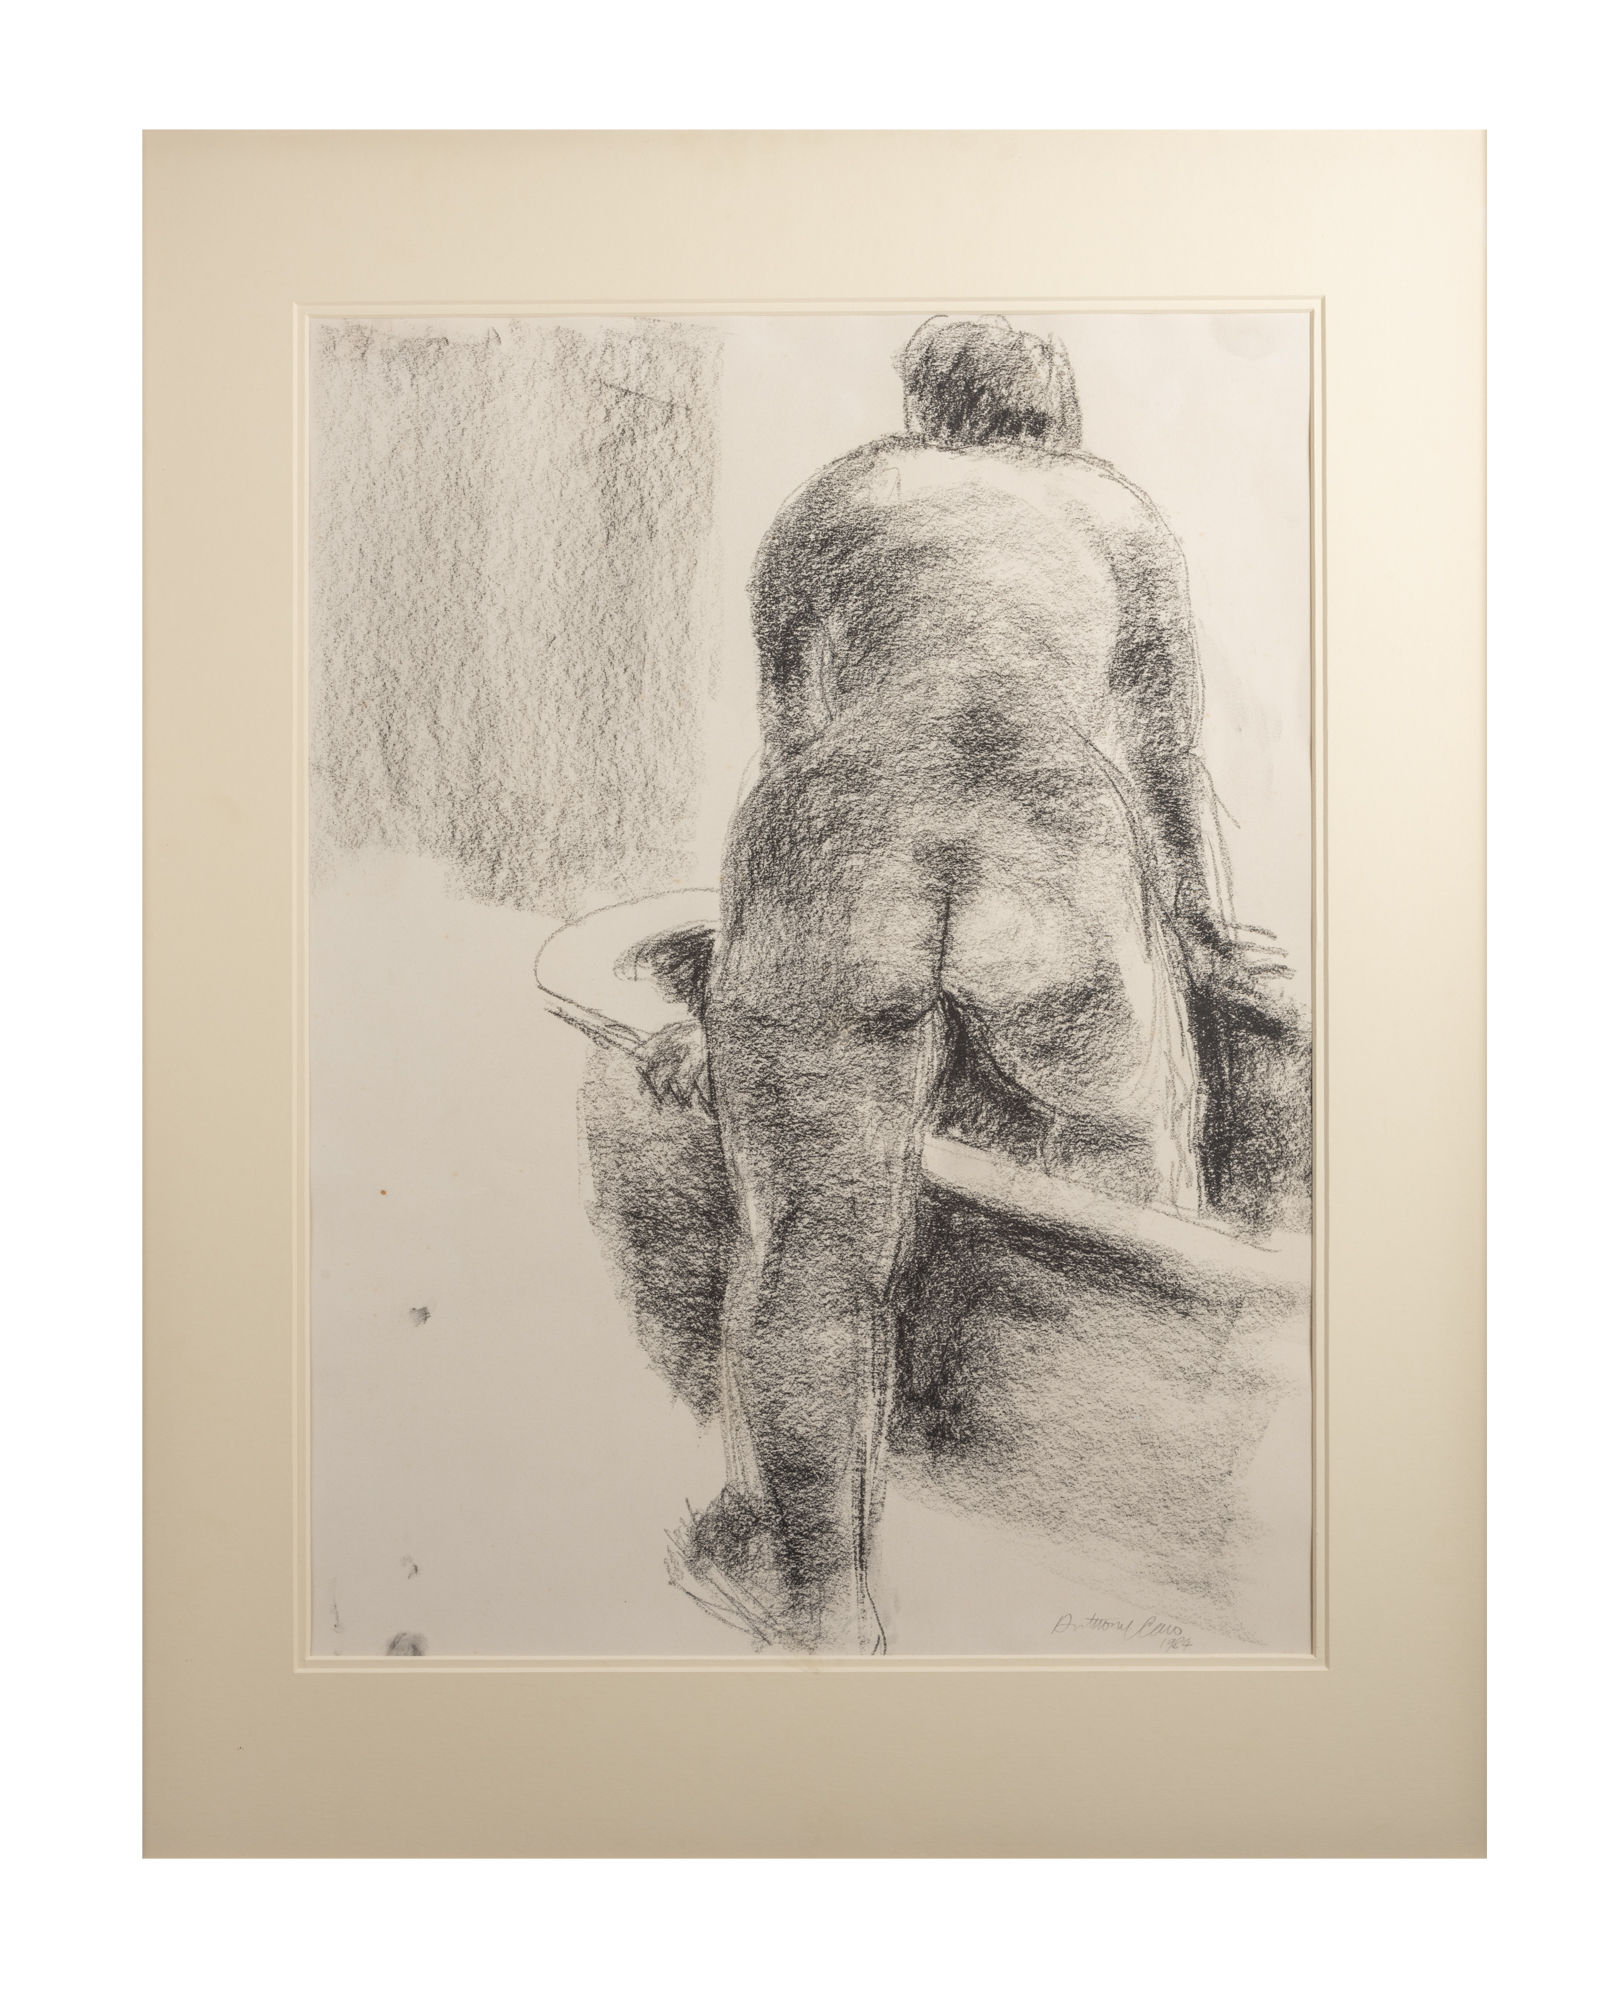 Untitled (Nude, Concetta Branson and Bathtub - study for 'Bathing Woman' bronze sculpture 1985/7) Sir Anthony Caro OM CBE 1924 - 2013